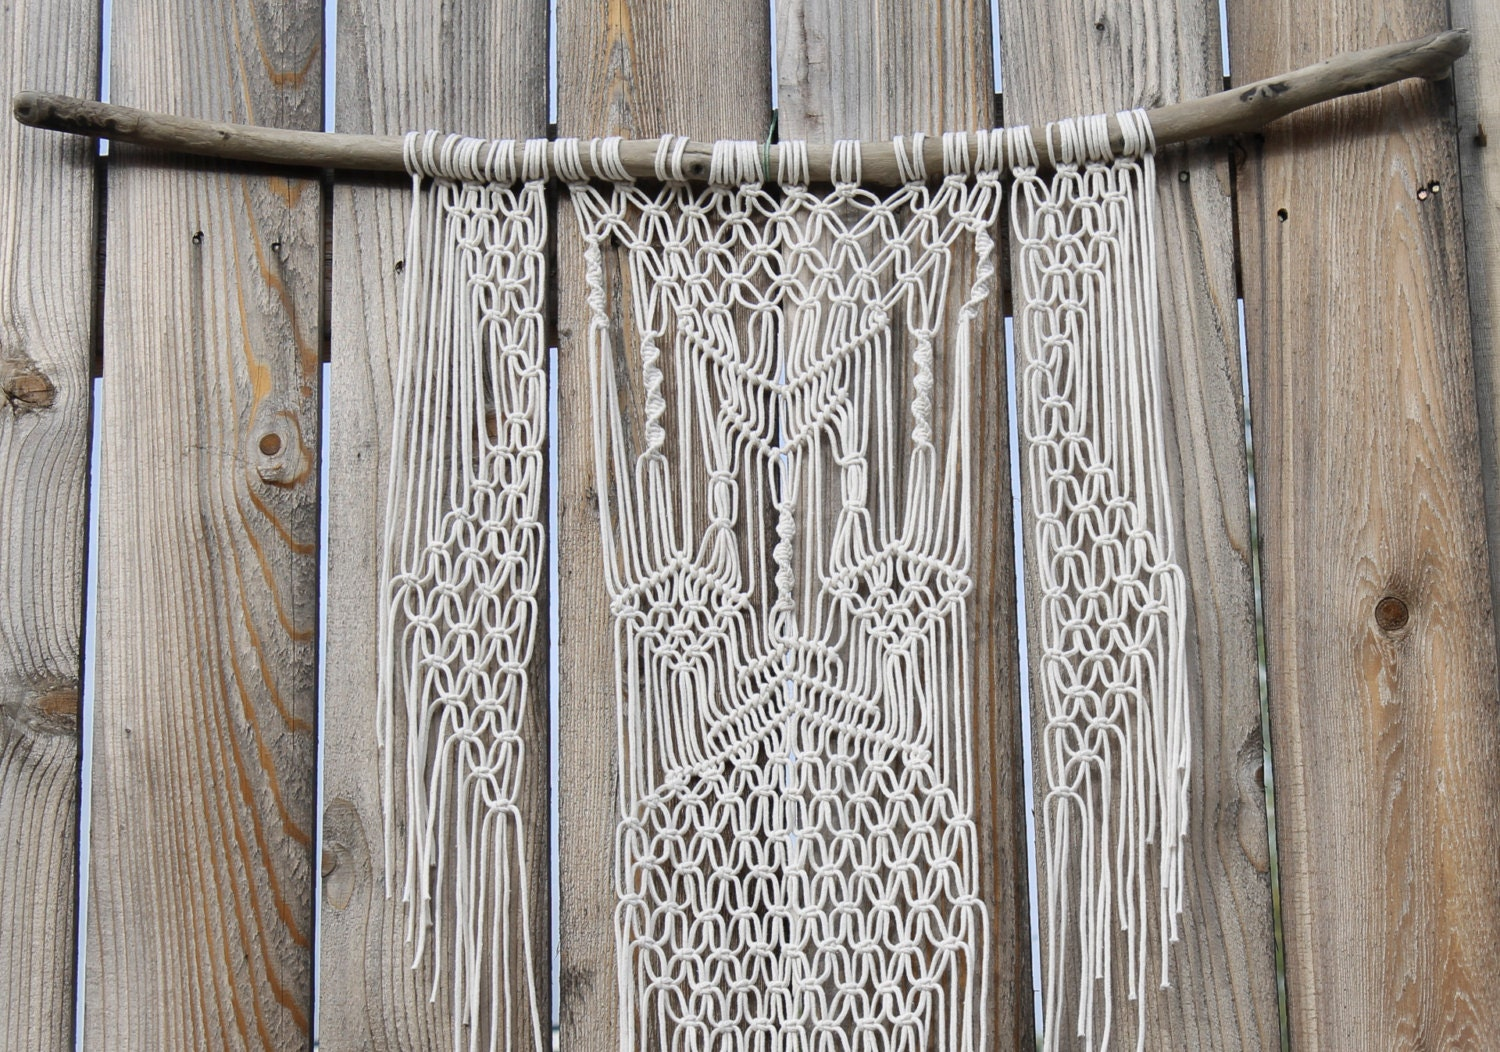 Wall Hangings Etsy macrame wall hanging on driftwood